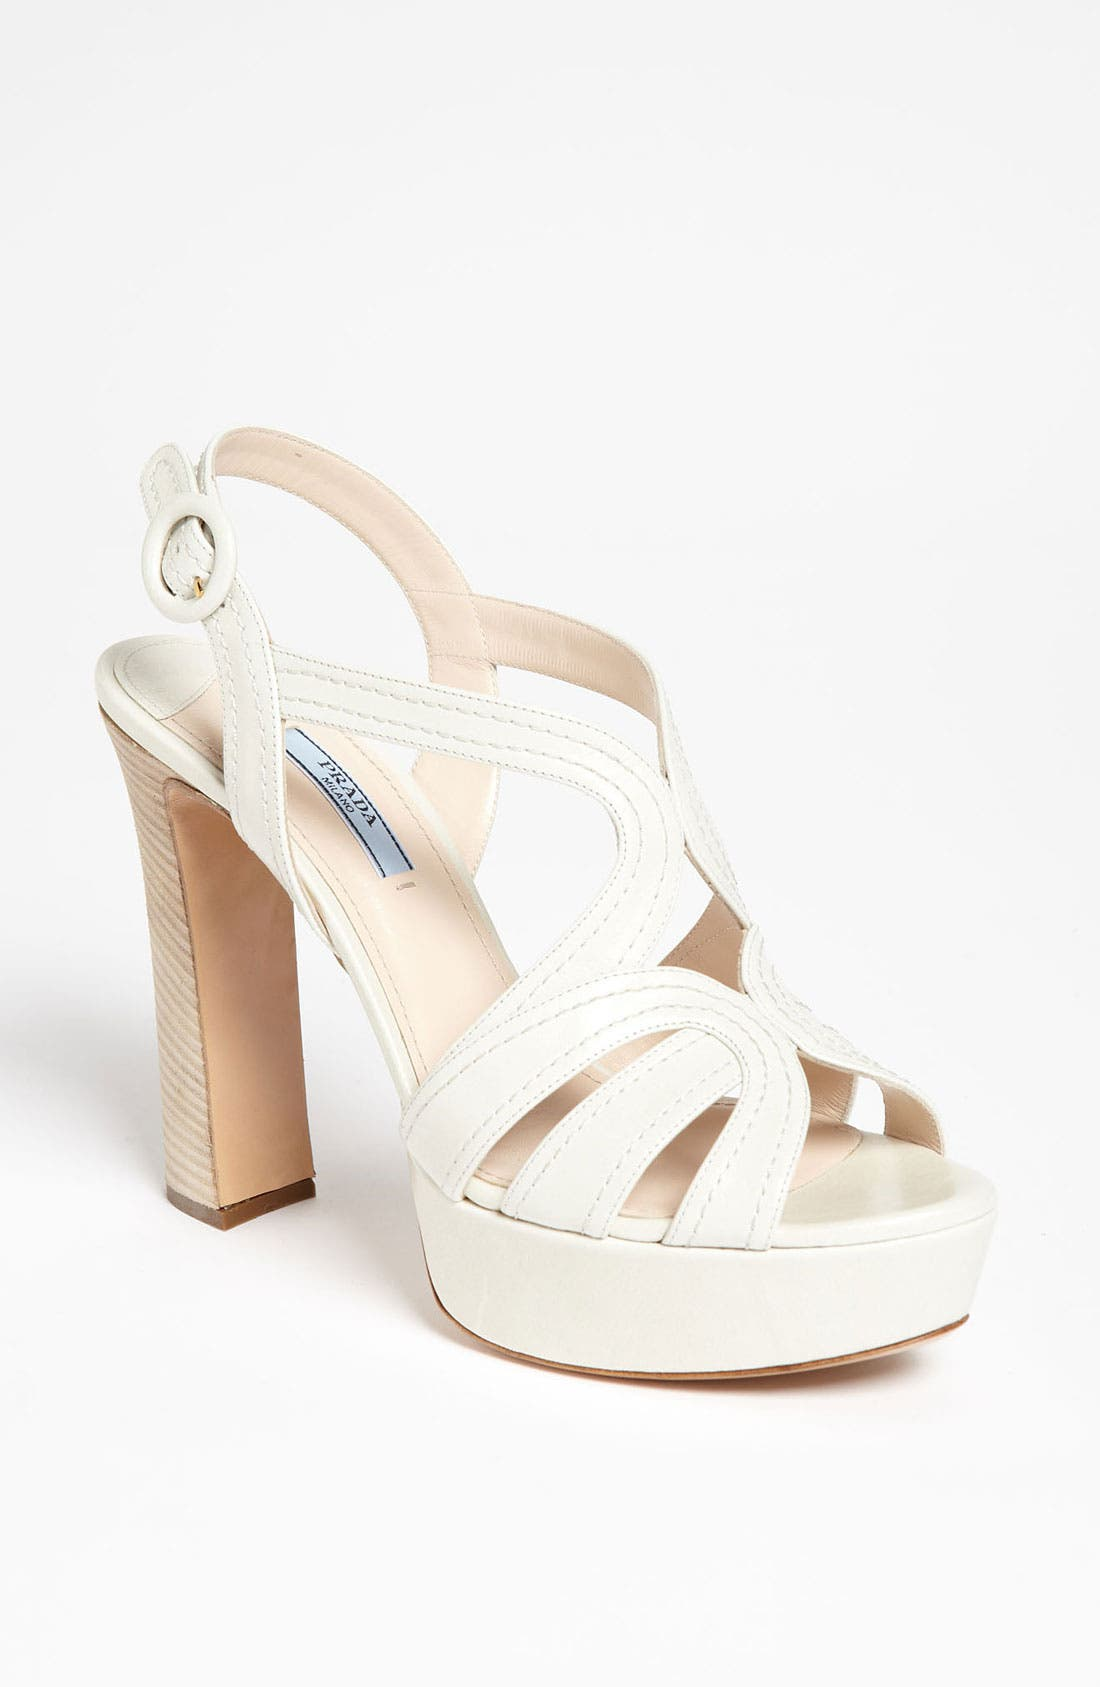 Blonde Heel Sandal,                         Main,                         color, White